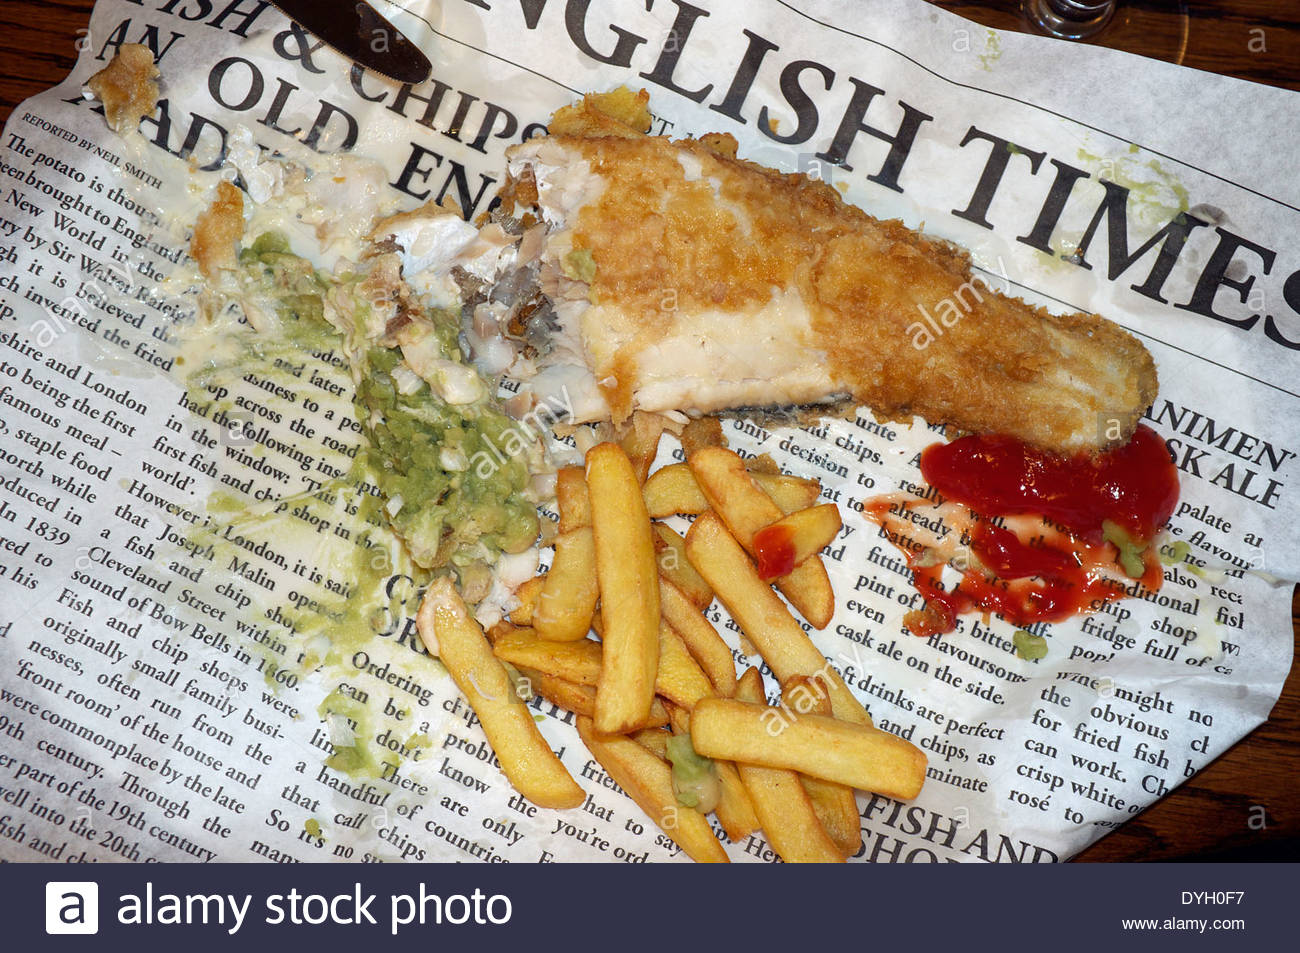 A nearly finished portion of battered cod chips mushy for Fish and chips newspaper